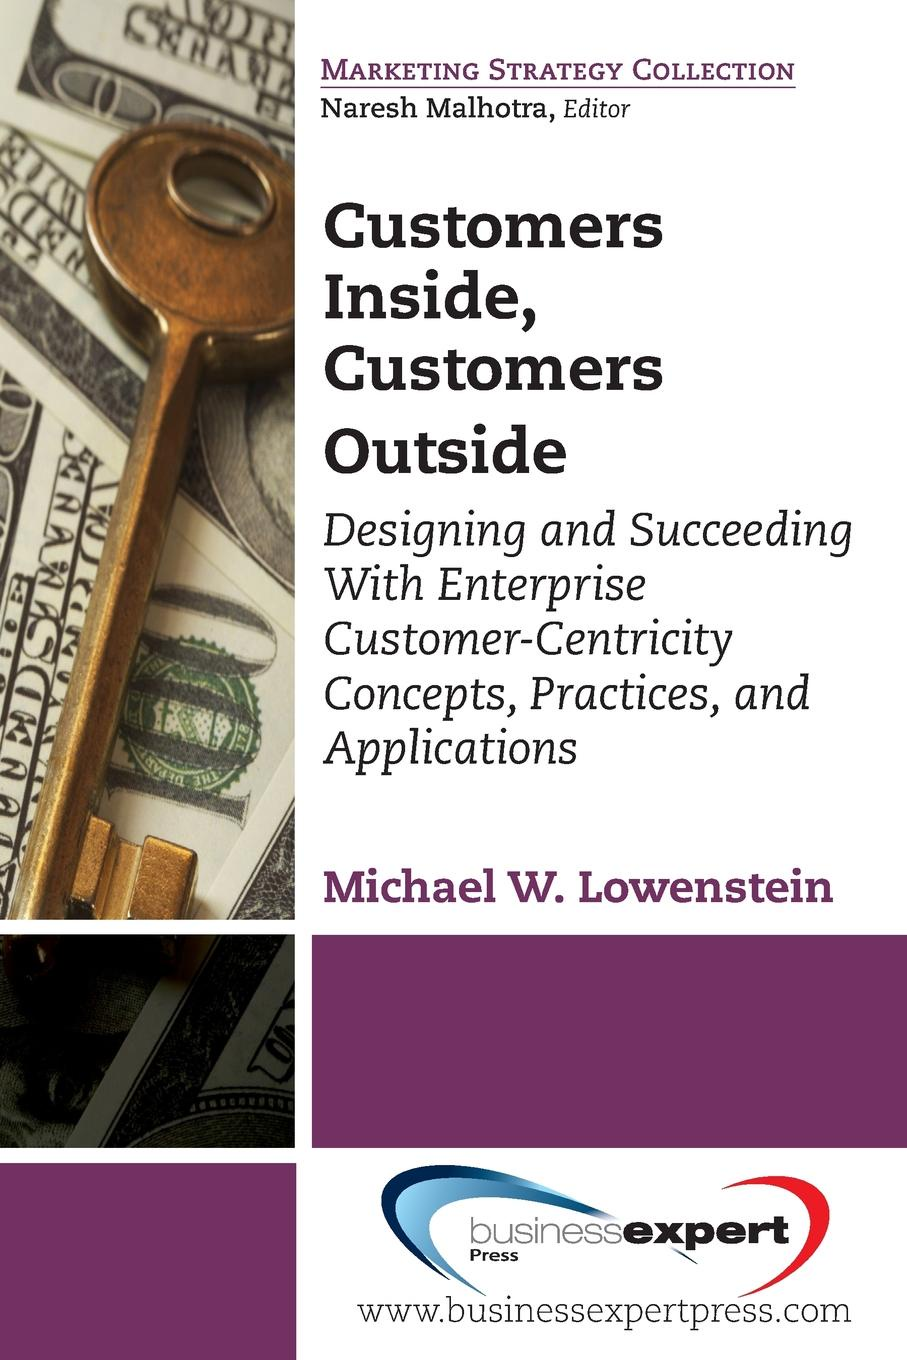 Michael W. Lowenstein Customers Inside, Customers Outside. Designing and Succeeding With Enterprise Customer-Centricity Concepts, Practices, and Applications andrew frawley igniting customer connections fire up your company s growth by multiplying customer experience and engagement